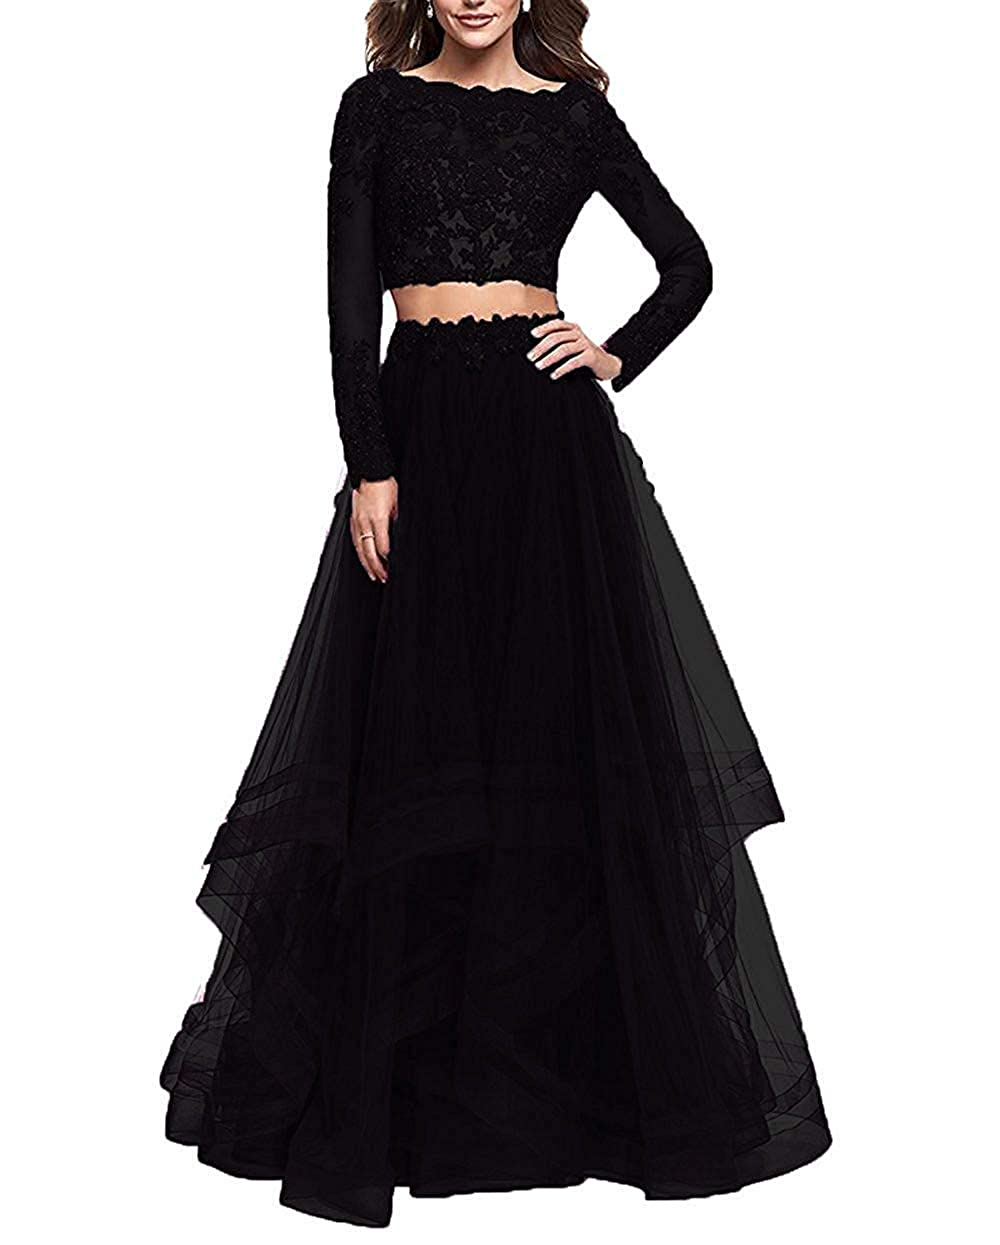 Black Sulidi Womens Lace Long Sleeves 2 Piece Tulle Prom Dresses 2019 Long Backless Formal Evening Gowns C238